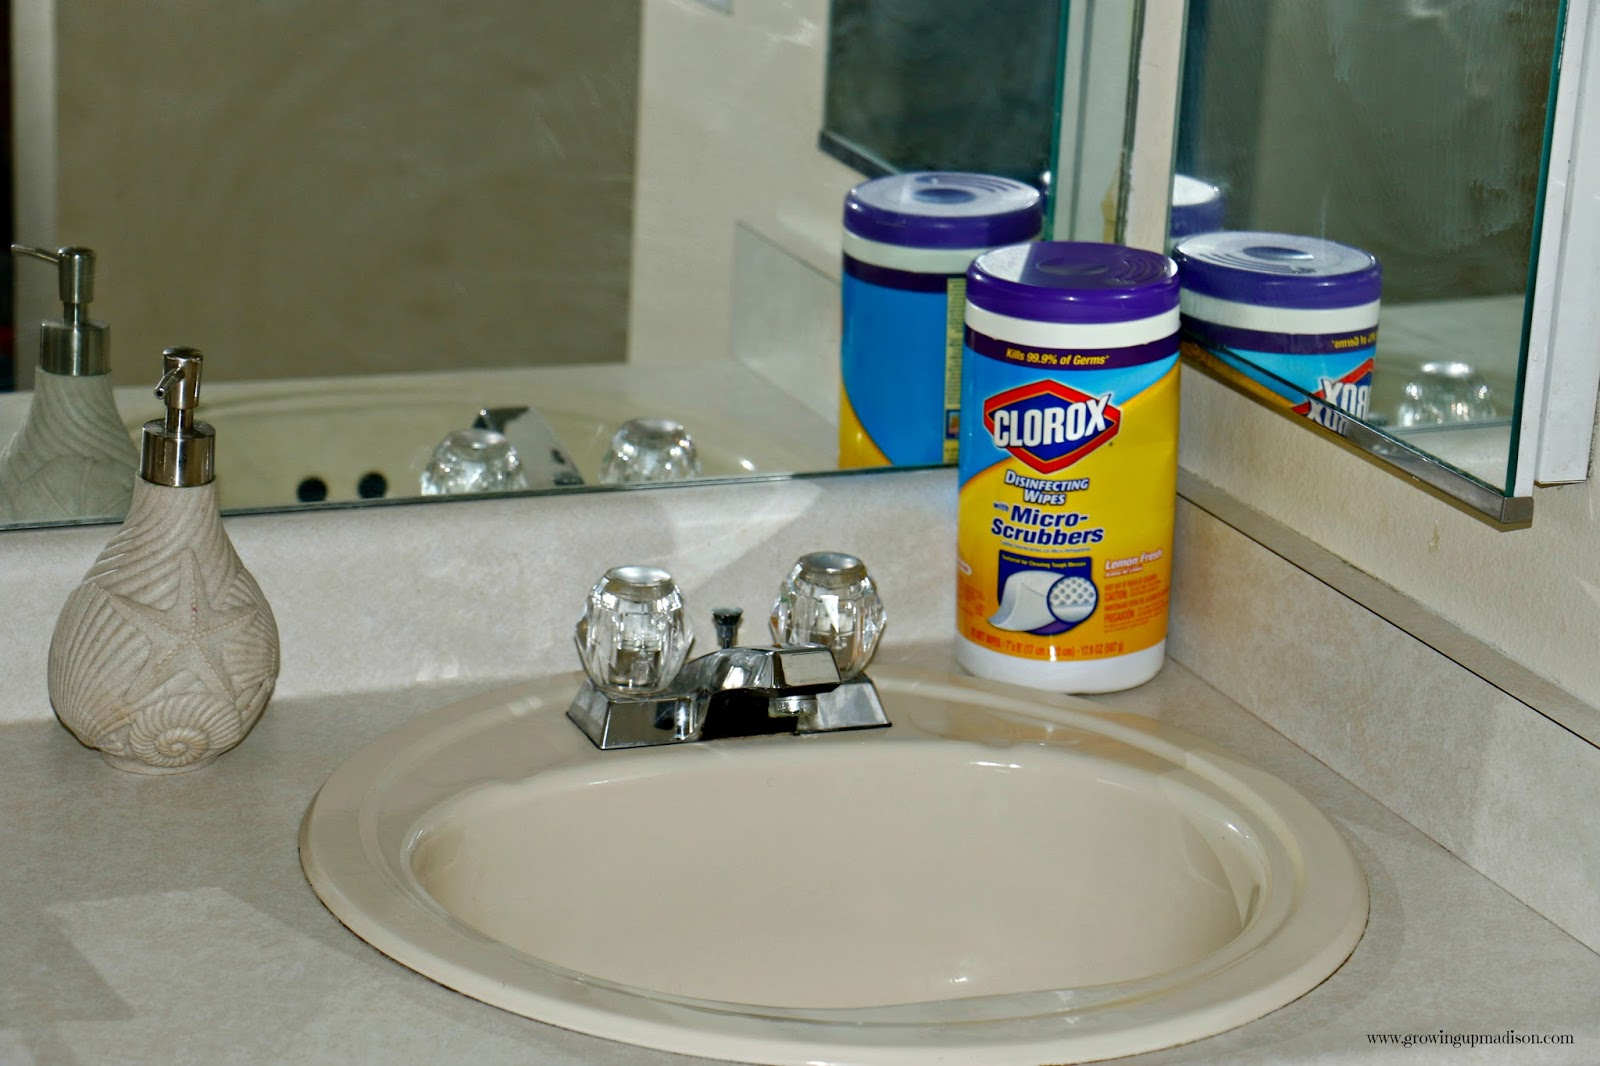 Clean Up With Clorox Disinfecting Wipes With MicroScrubbers - Clorox disinfecting bathroom cleaner for bathroom decor ideas